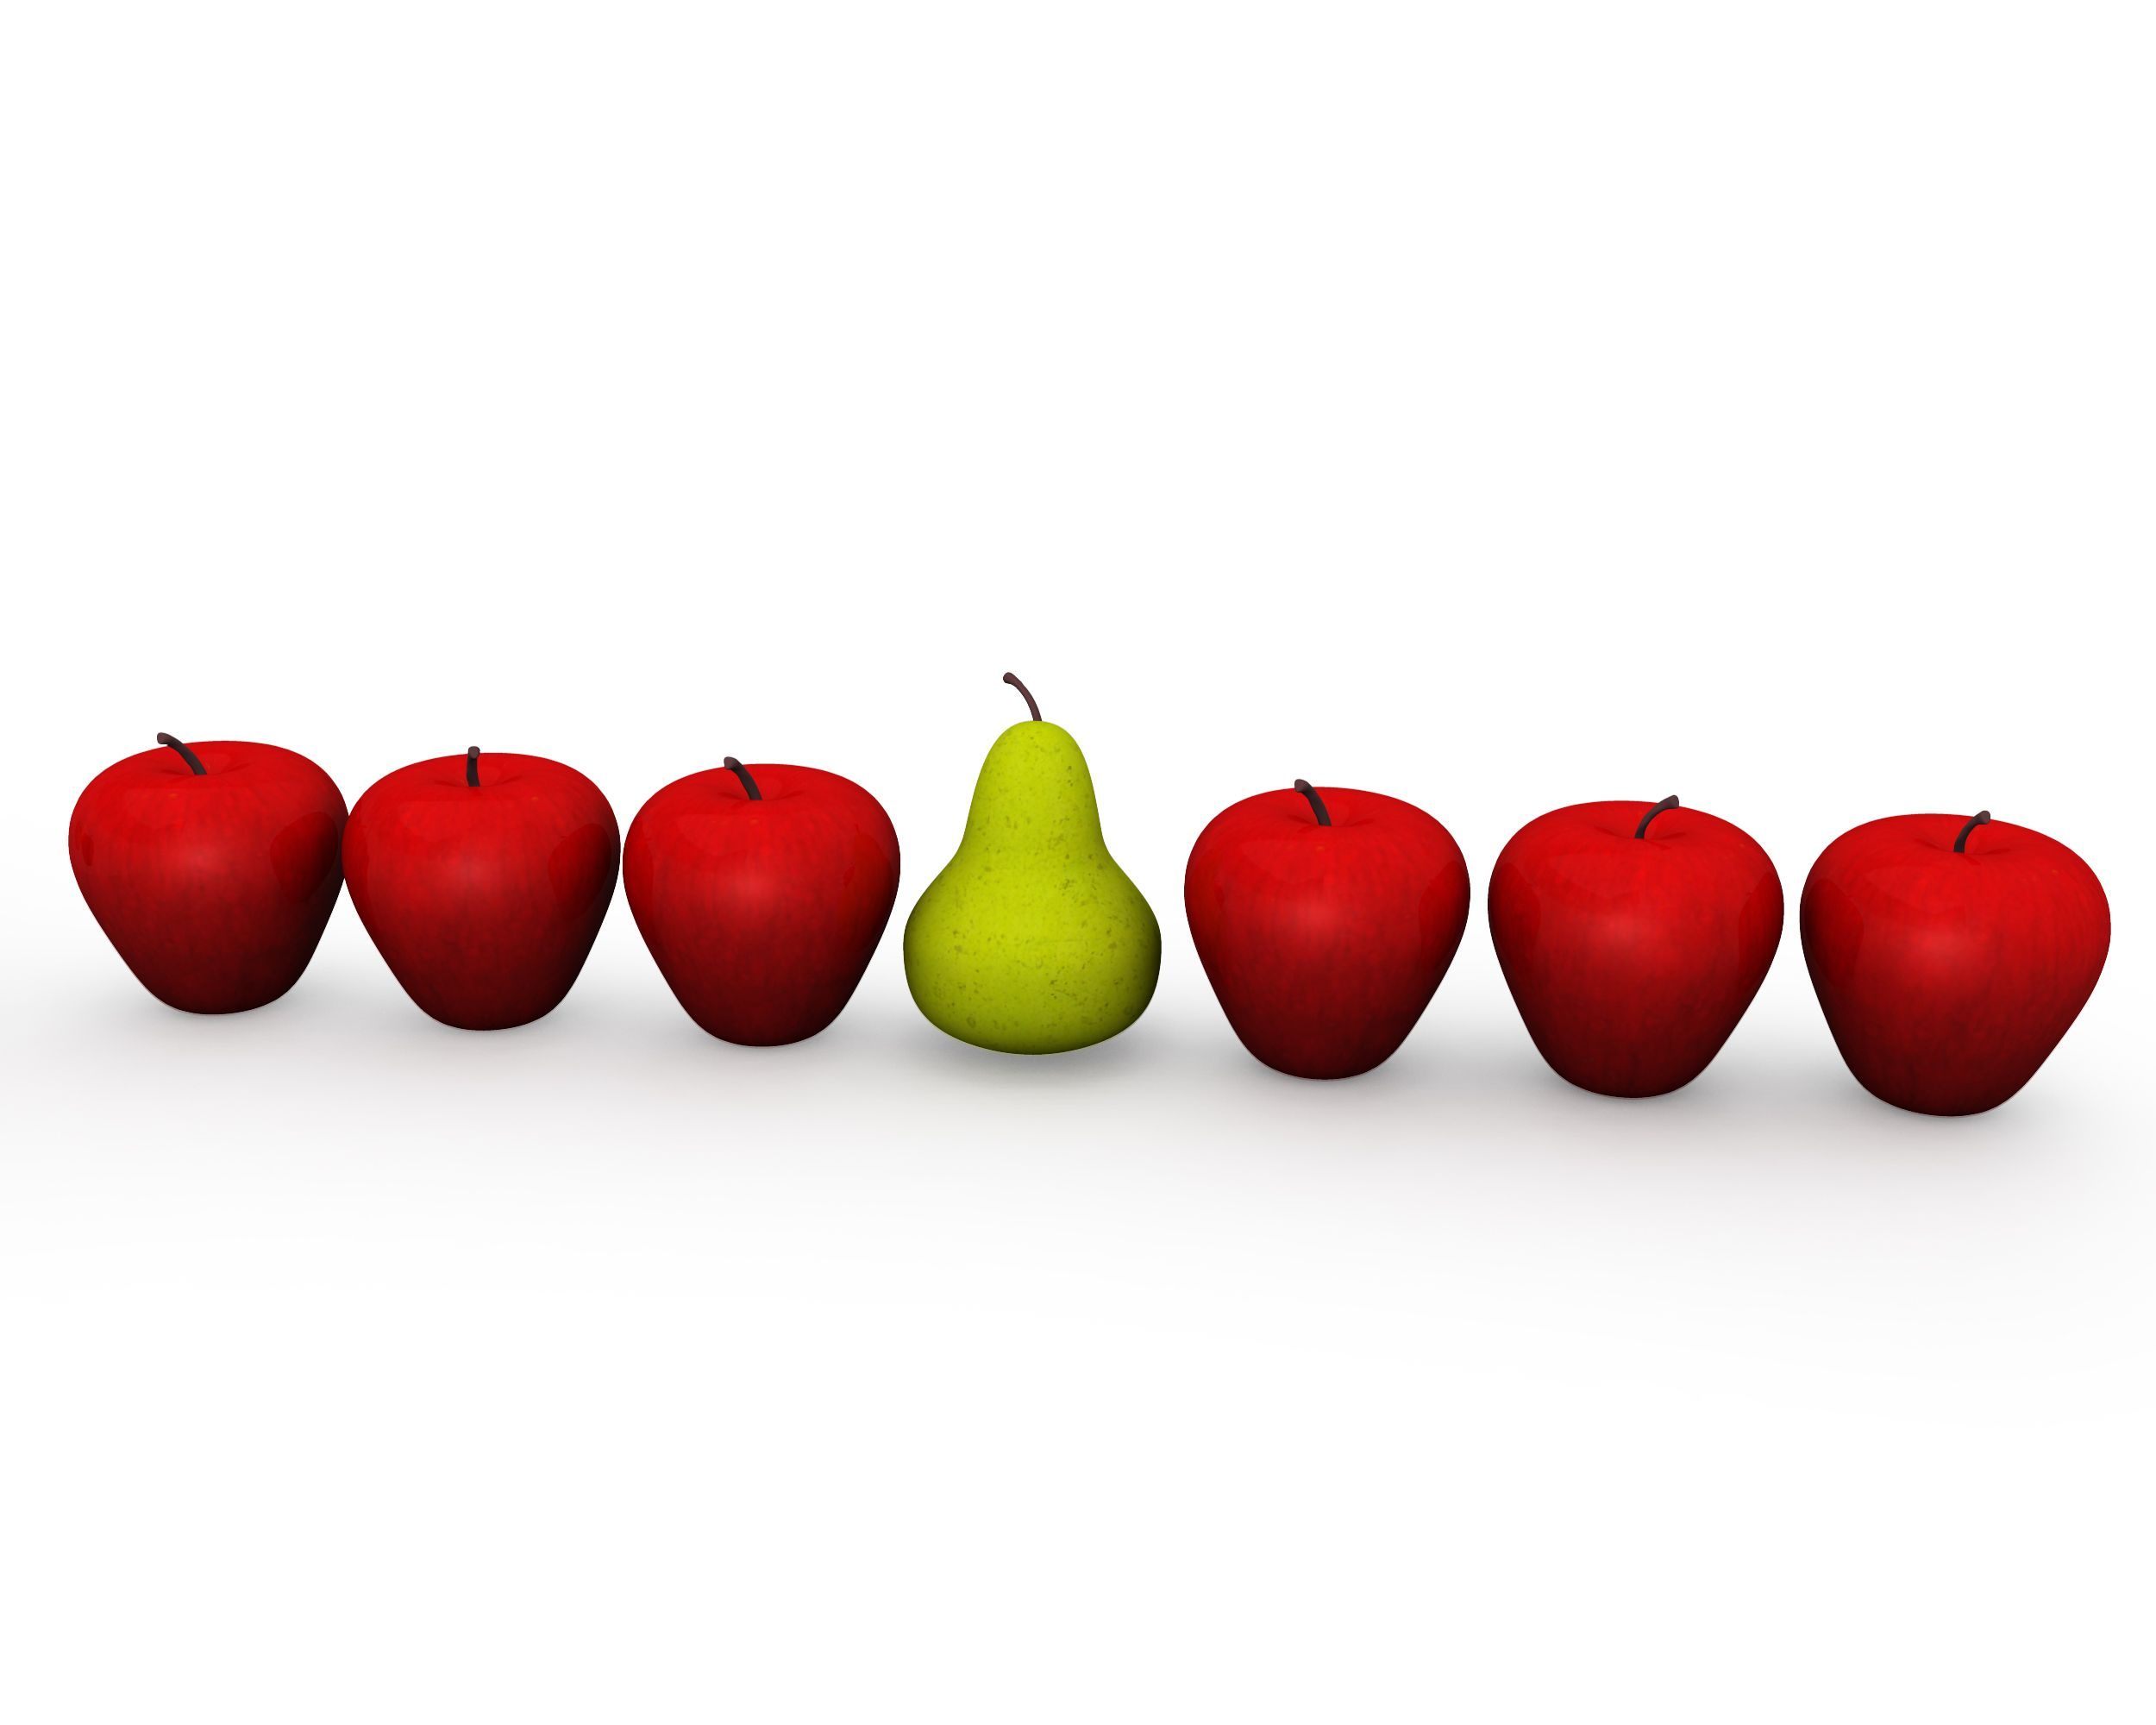 apples_in_queue_with_one_pear_shows_leadership_stock_photo_Slide01